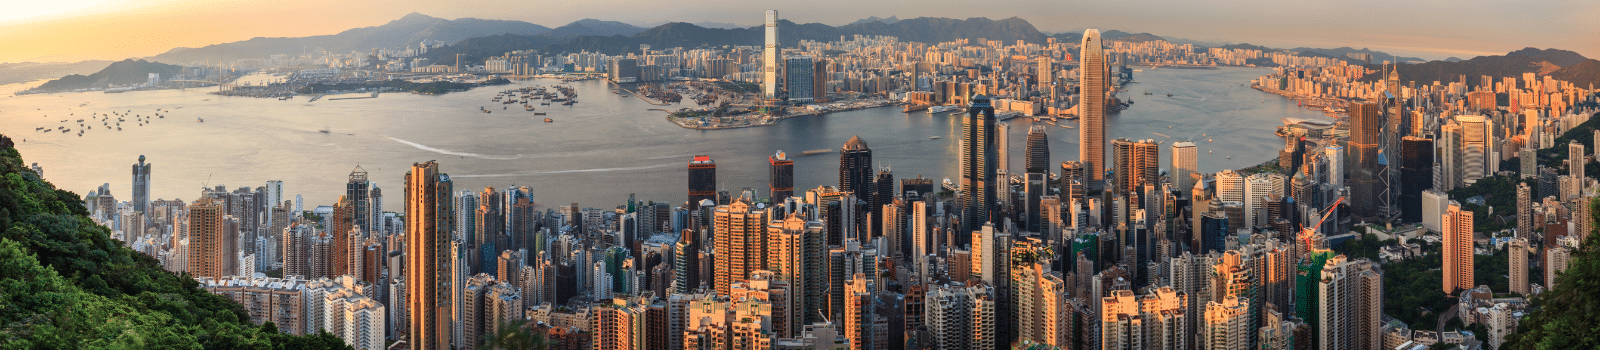 Hong Kong pictured from above